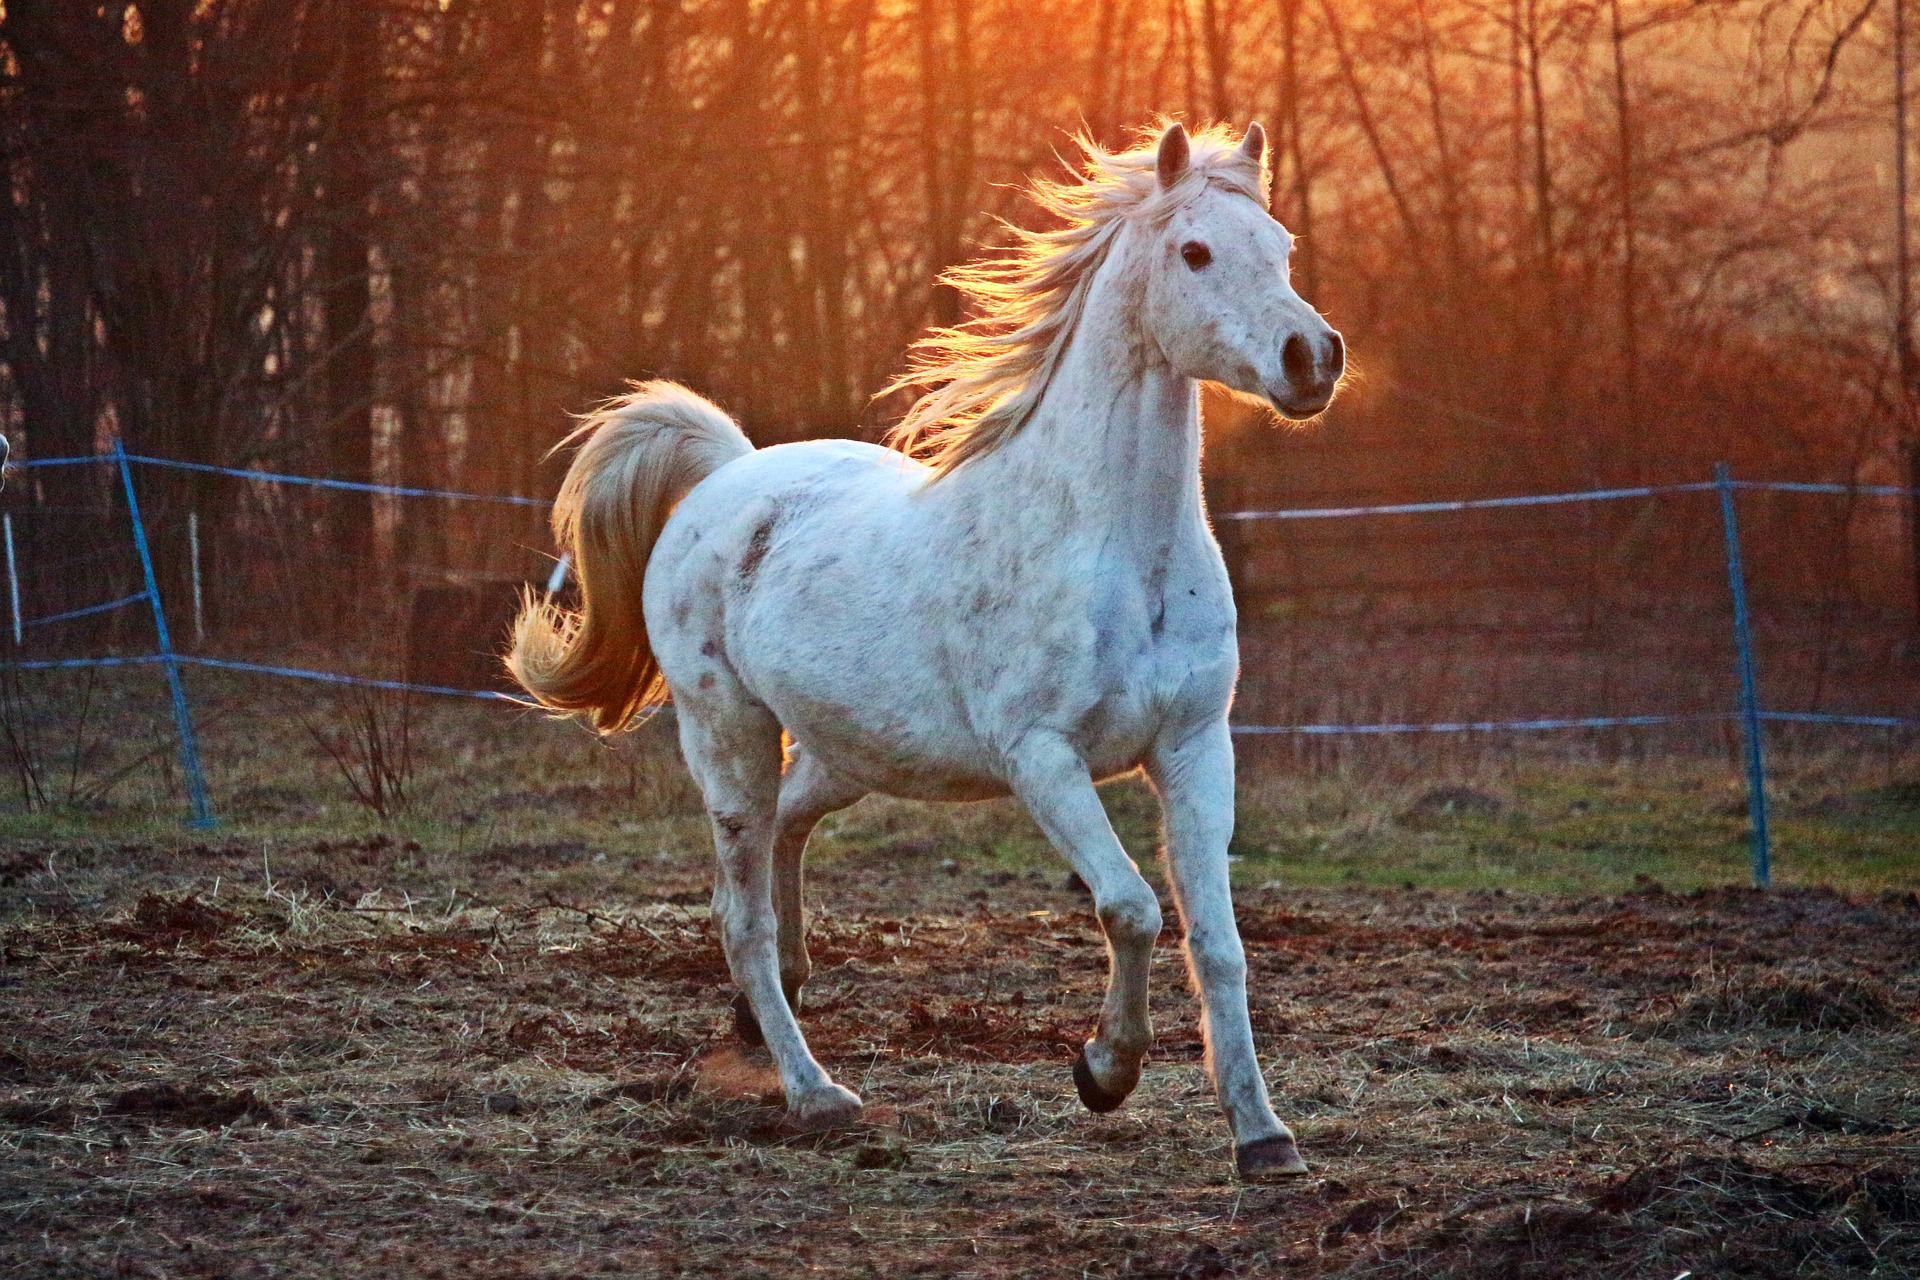 White horse running through a field